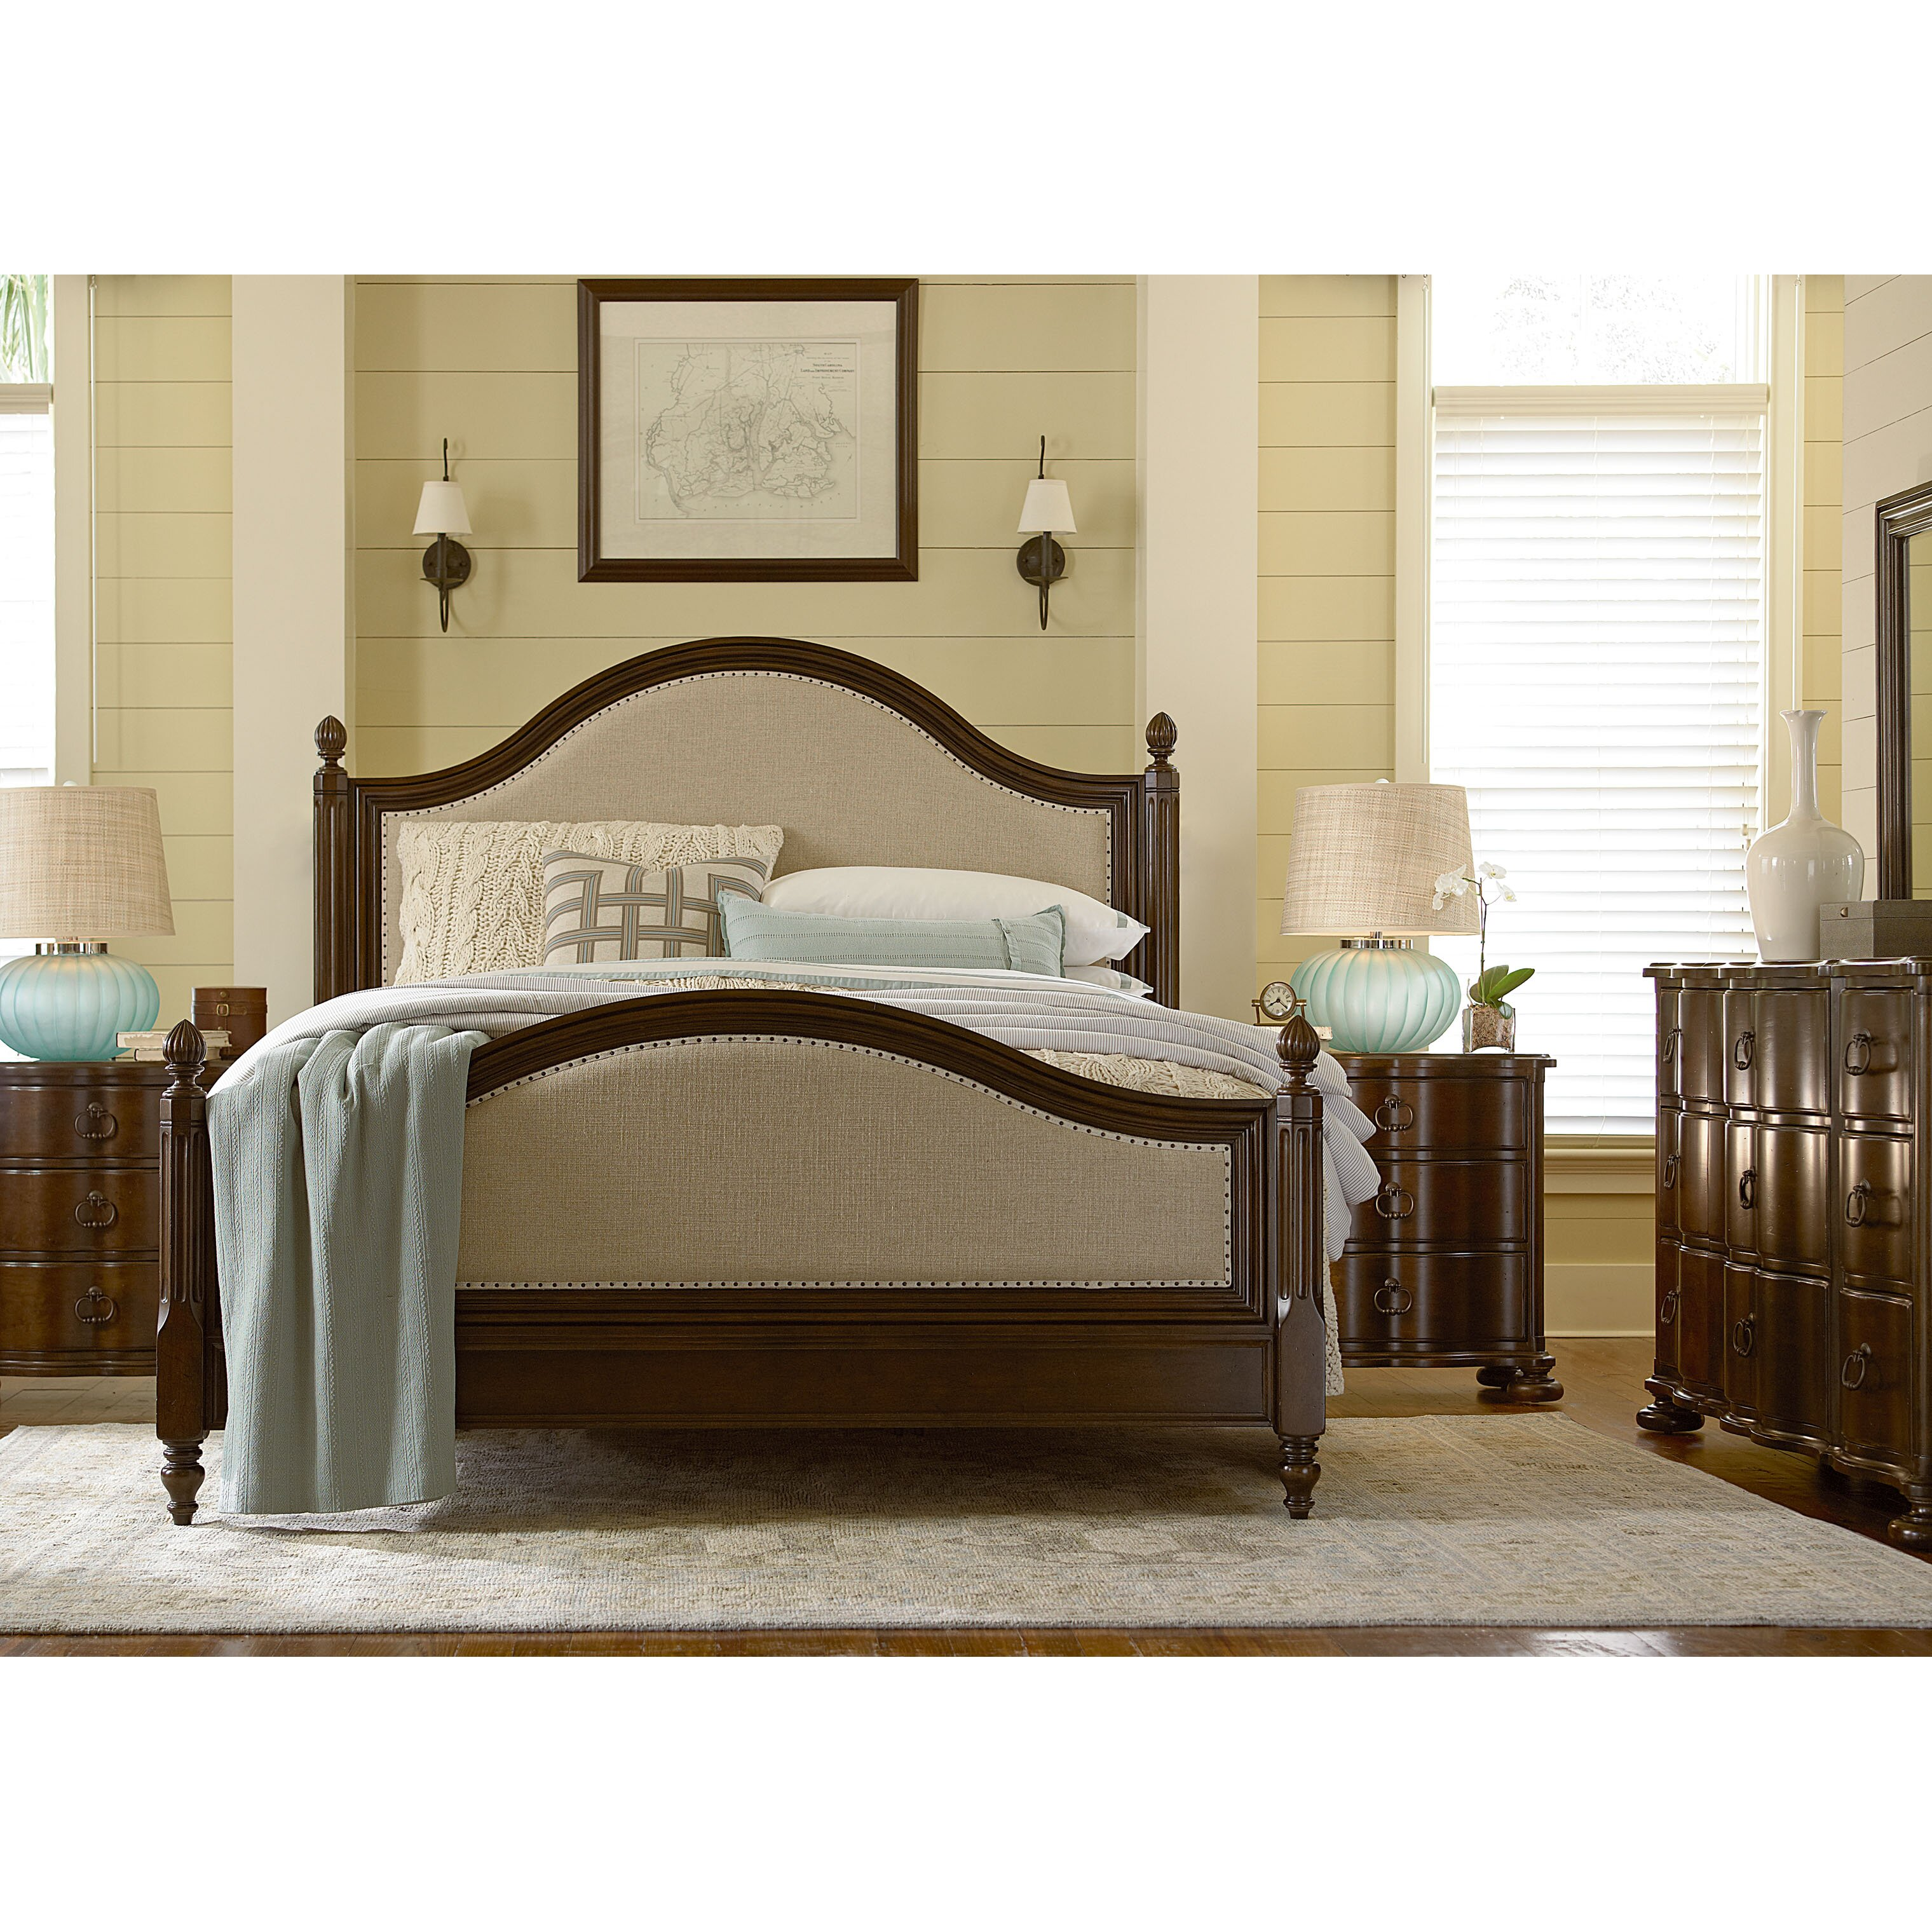 Paula deen river house panel customizable bedroom set for Paula deen bedroom furniture